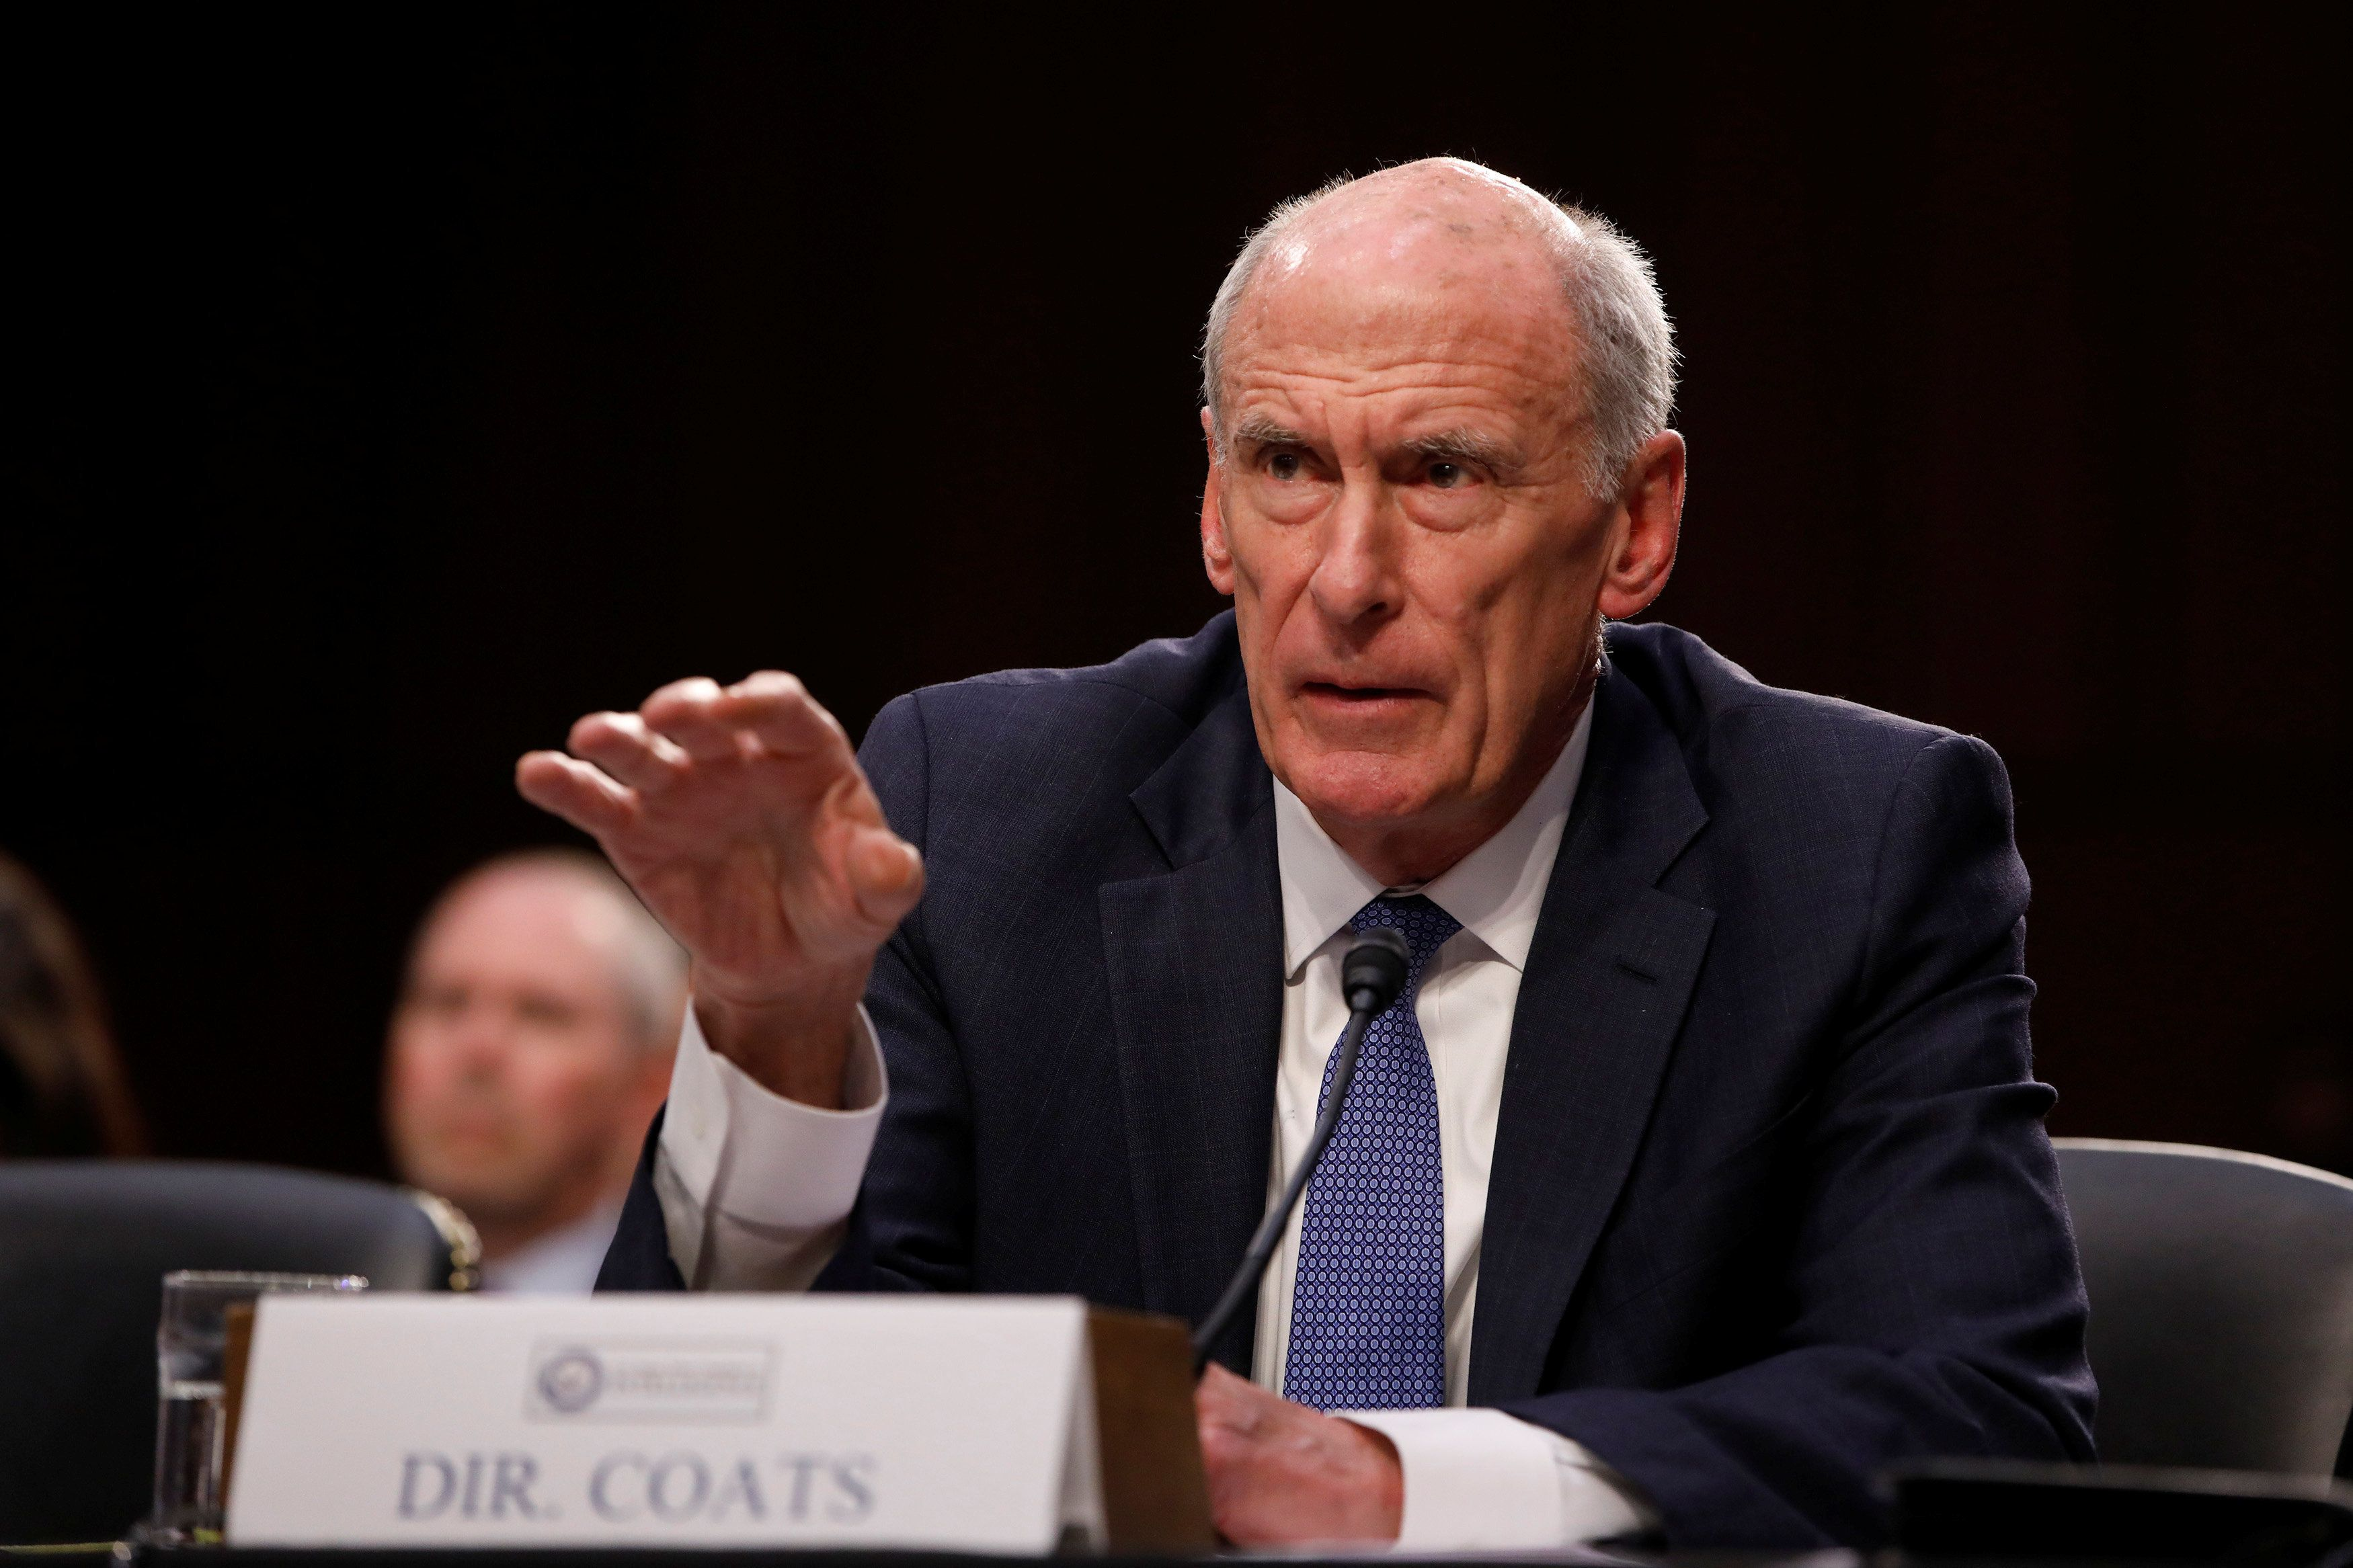 Director of National Intelligence Daniel Coats testifies before a Senate Intelligence Committee hearing on Capitol Hill in Wa